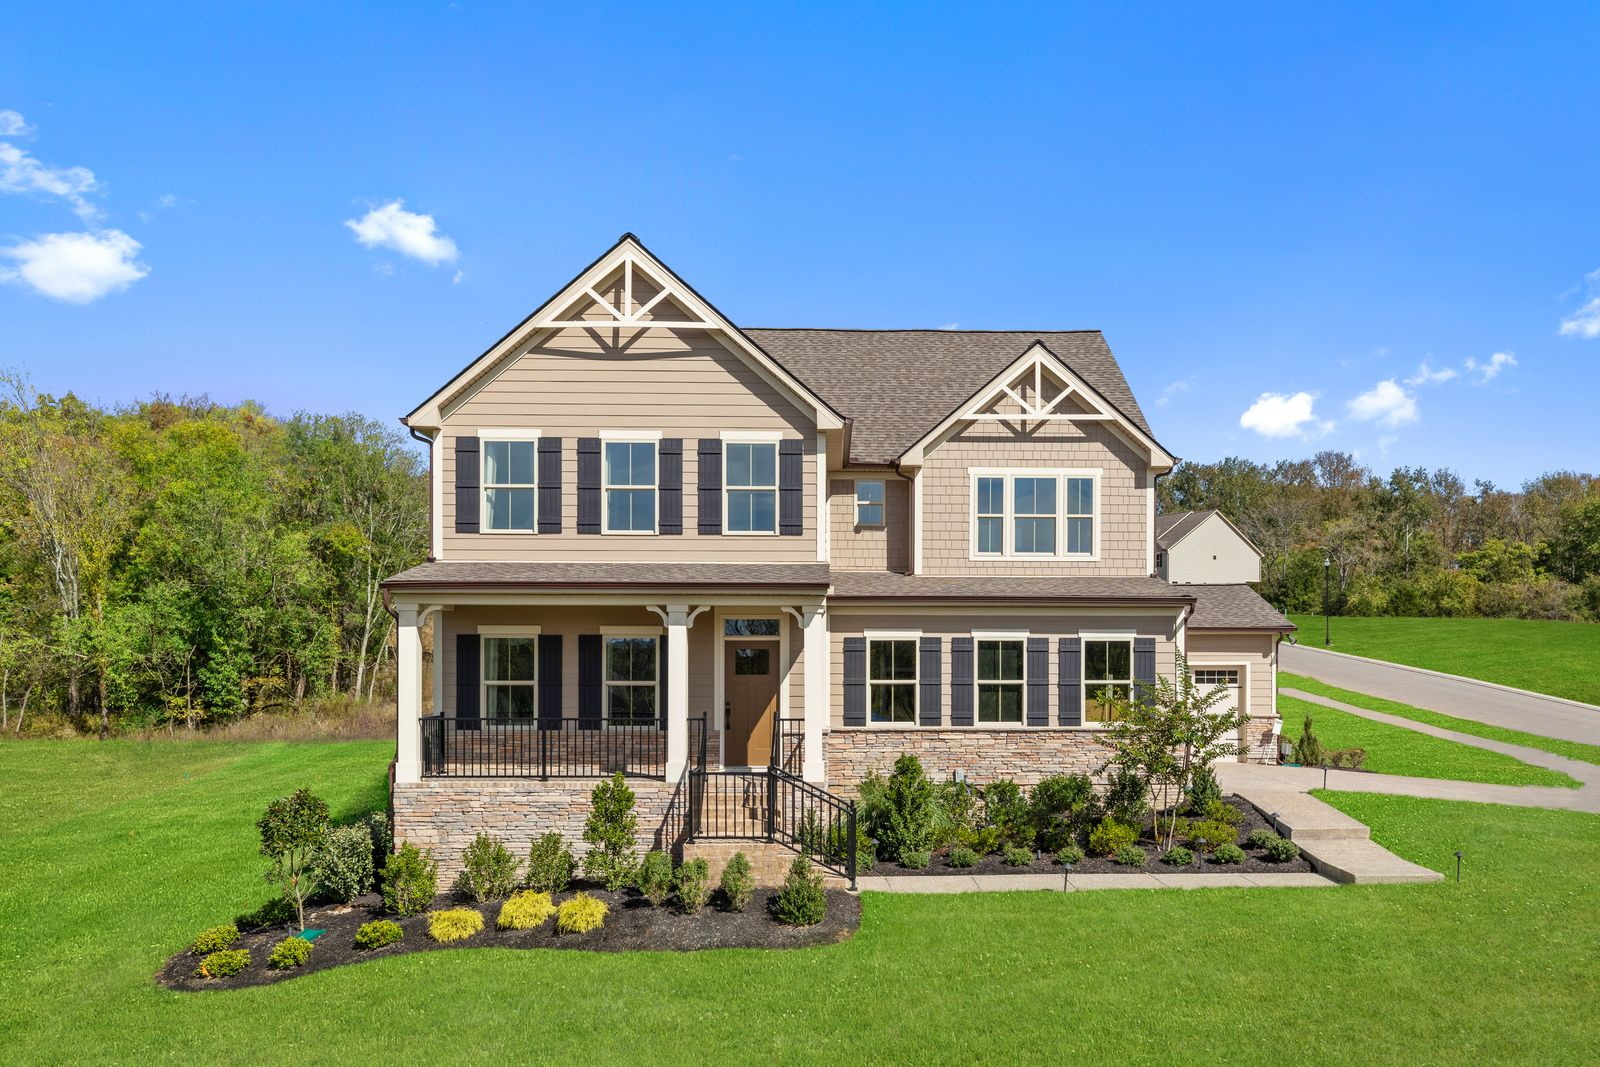 Falls Grove - Resort-Style Living in Williamson County:Spacious, tree-lined homesites, resort-style amenities, easy access to I-840 & I-65, and 5 minutes from Page High & Middle.Schedule your virtual or in-person visit today!